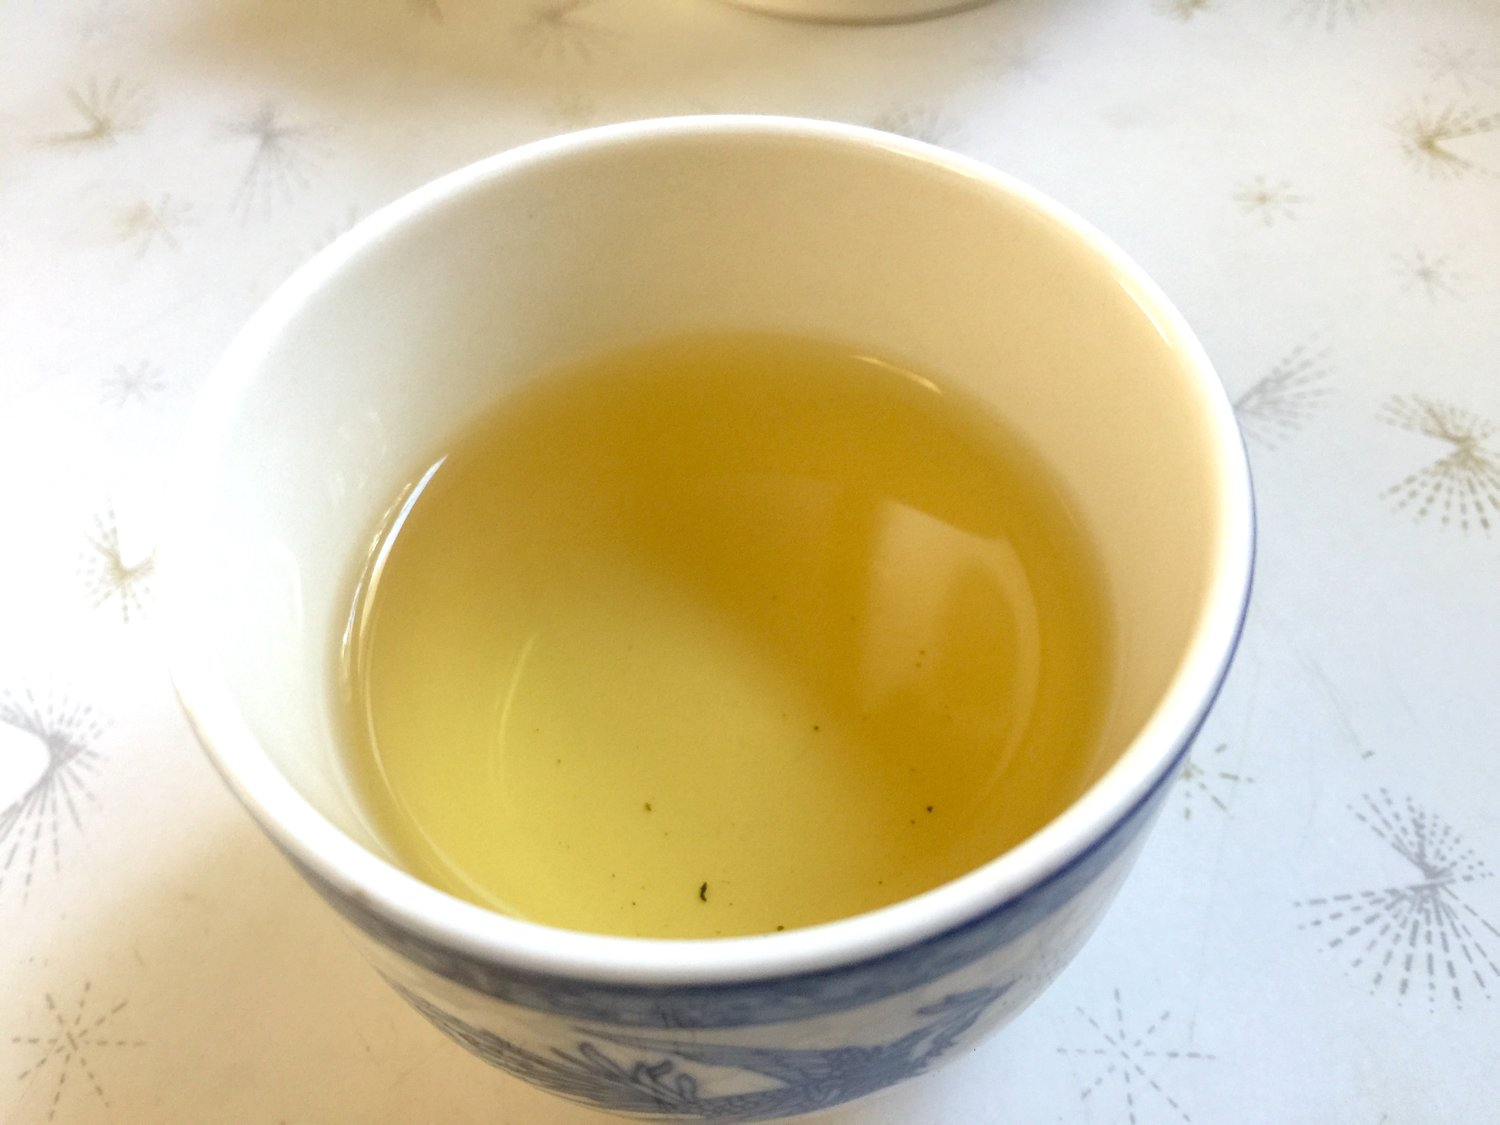 I tasted the tea for the first time this morning. It smells and tastes so good: Sweet, fresh and refreshing. 這茶香甜清新,沁人心脾,聞之醒腦,喝之暖心!